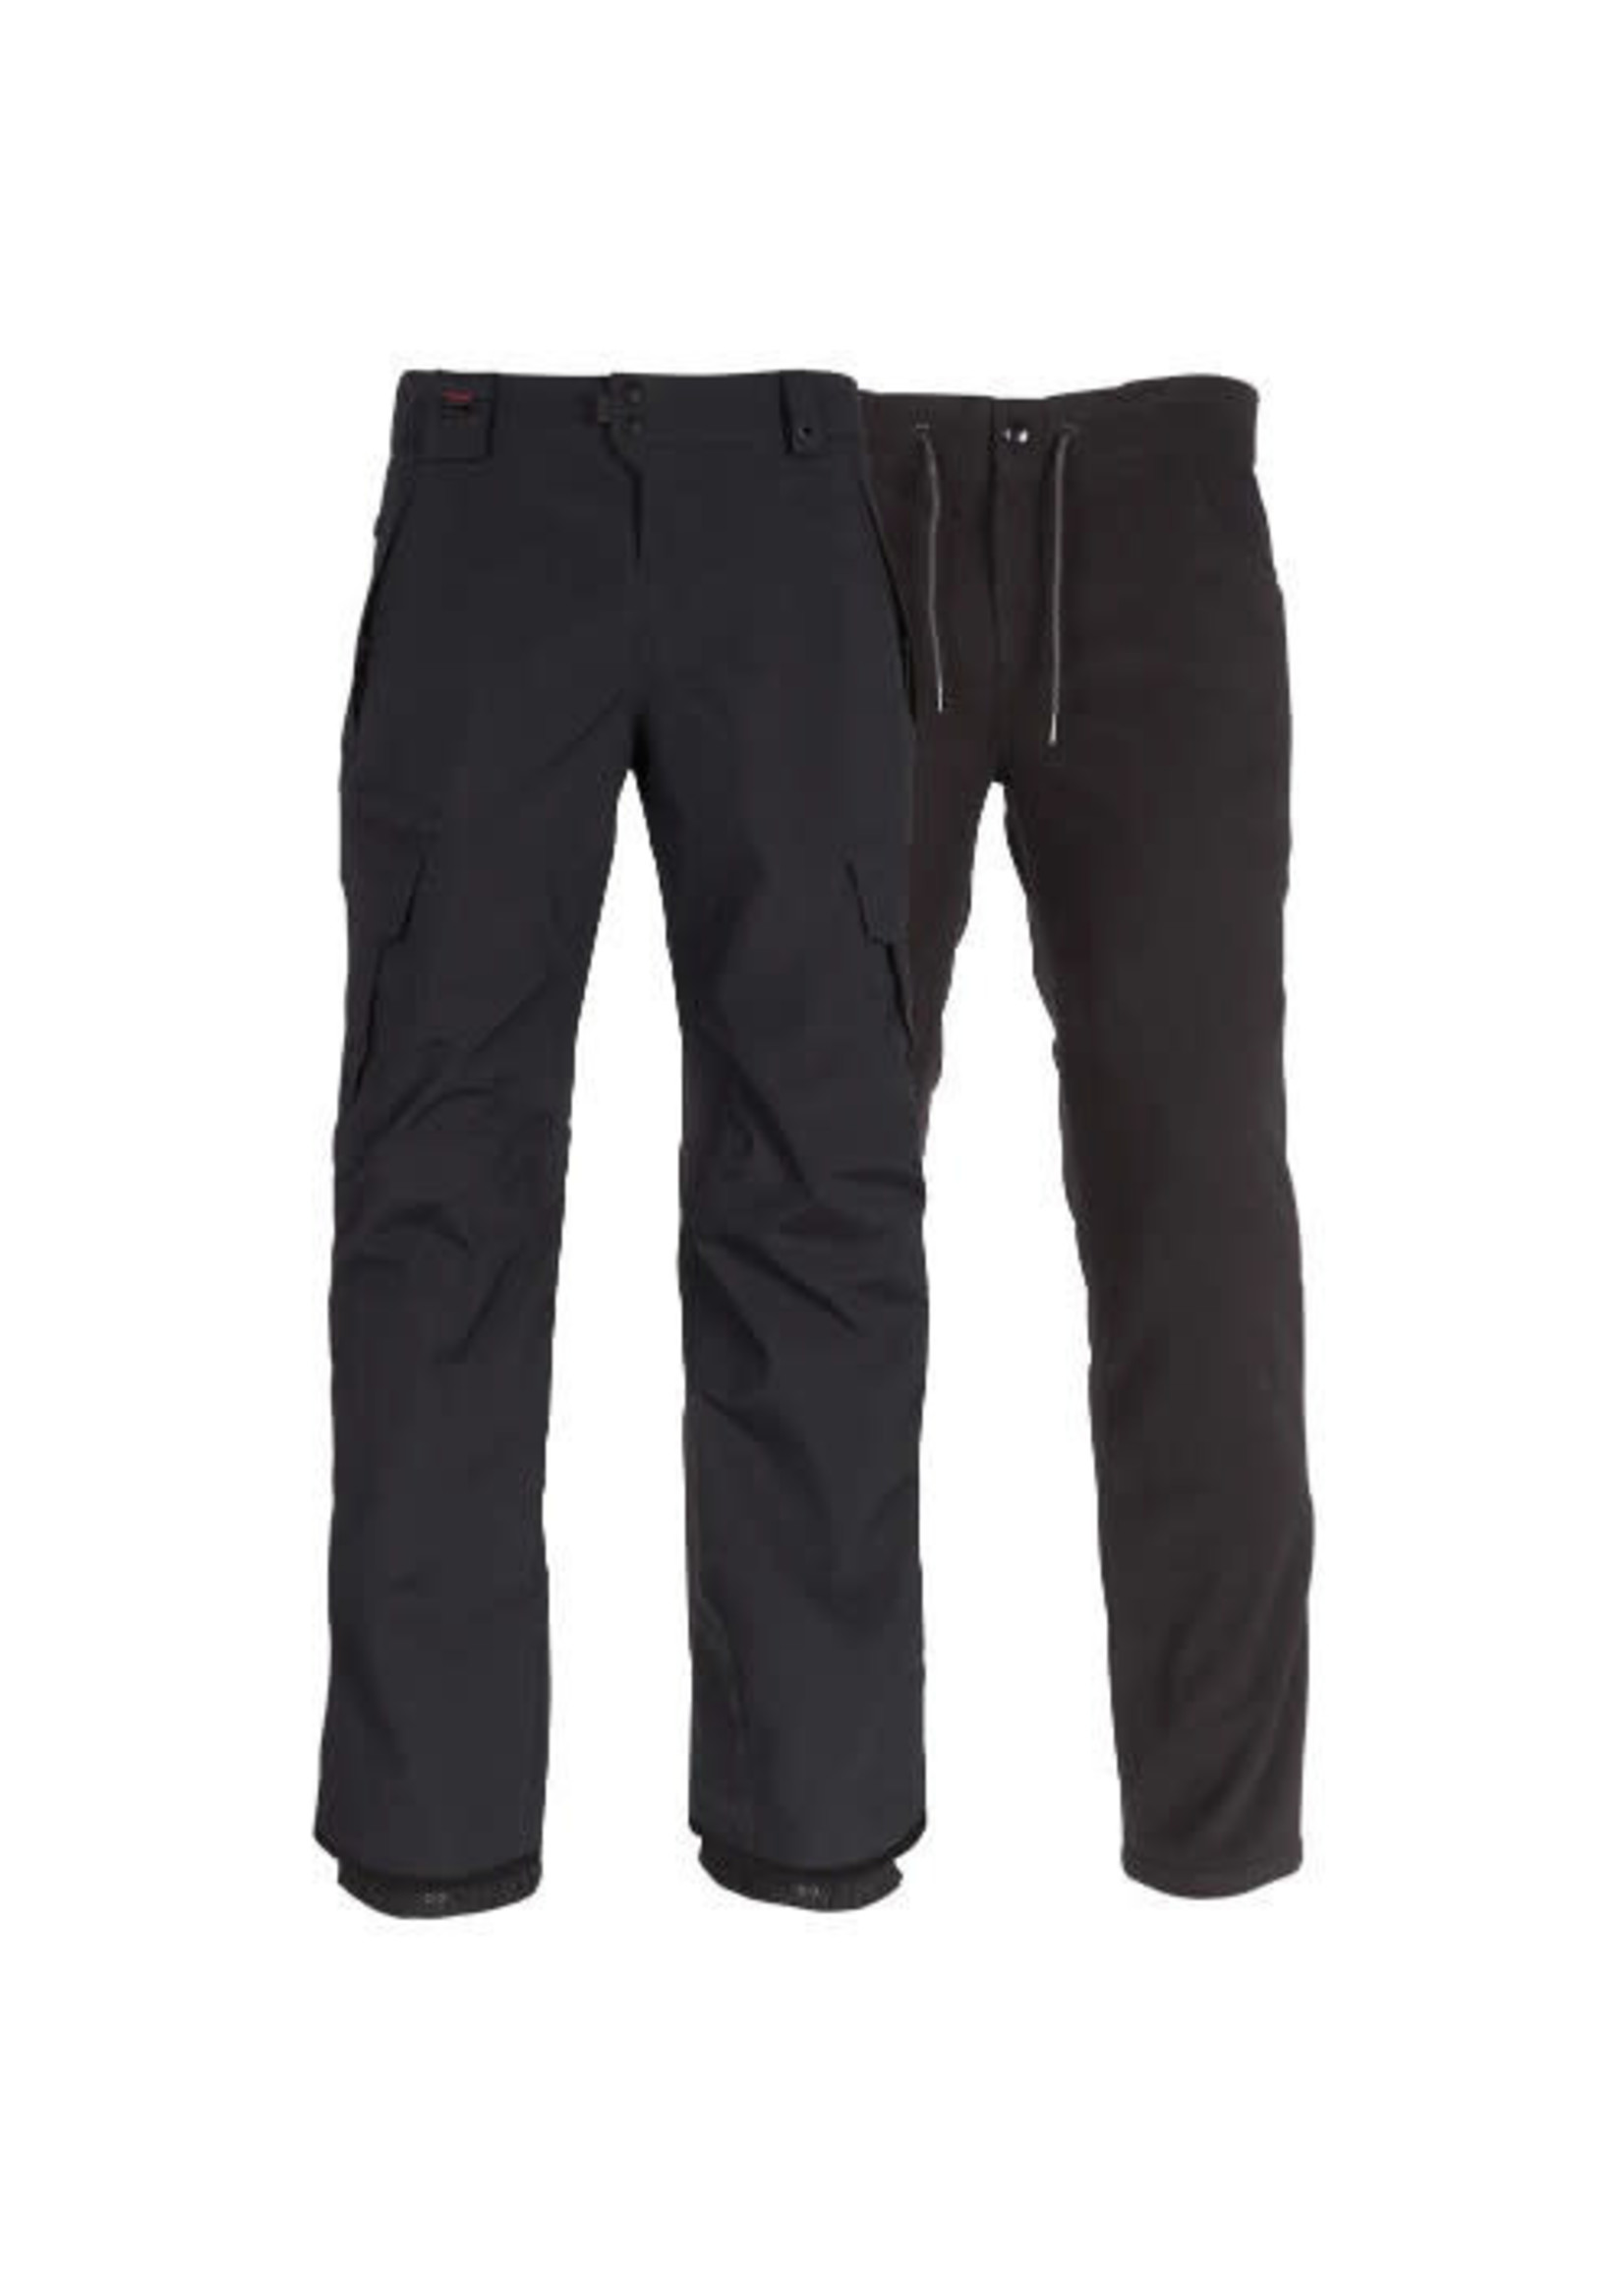 686 Smarty 3-in-1 Cargo Pant 2020 XS Black